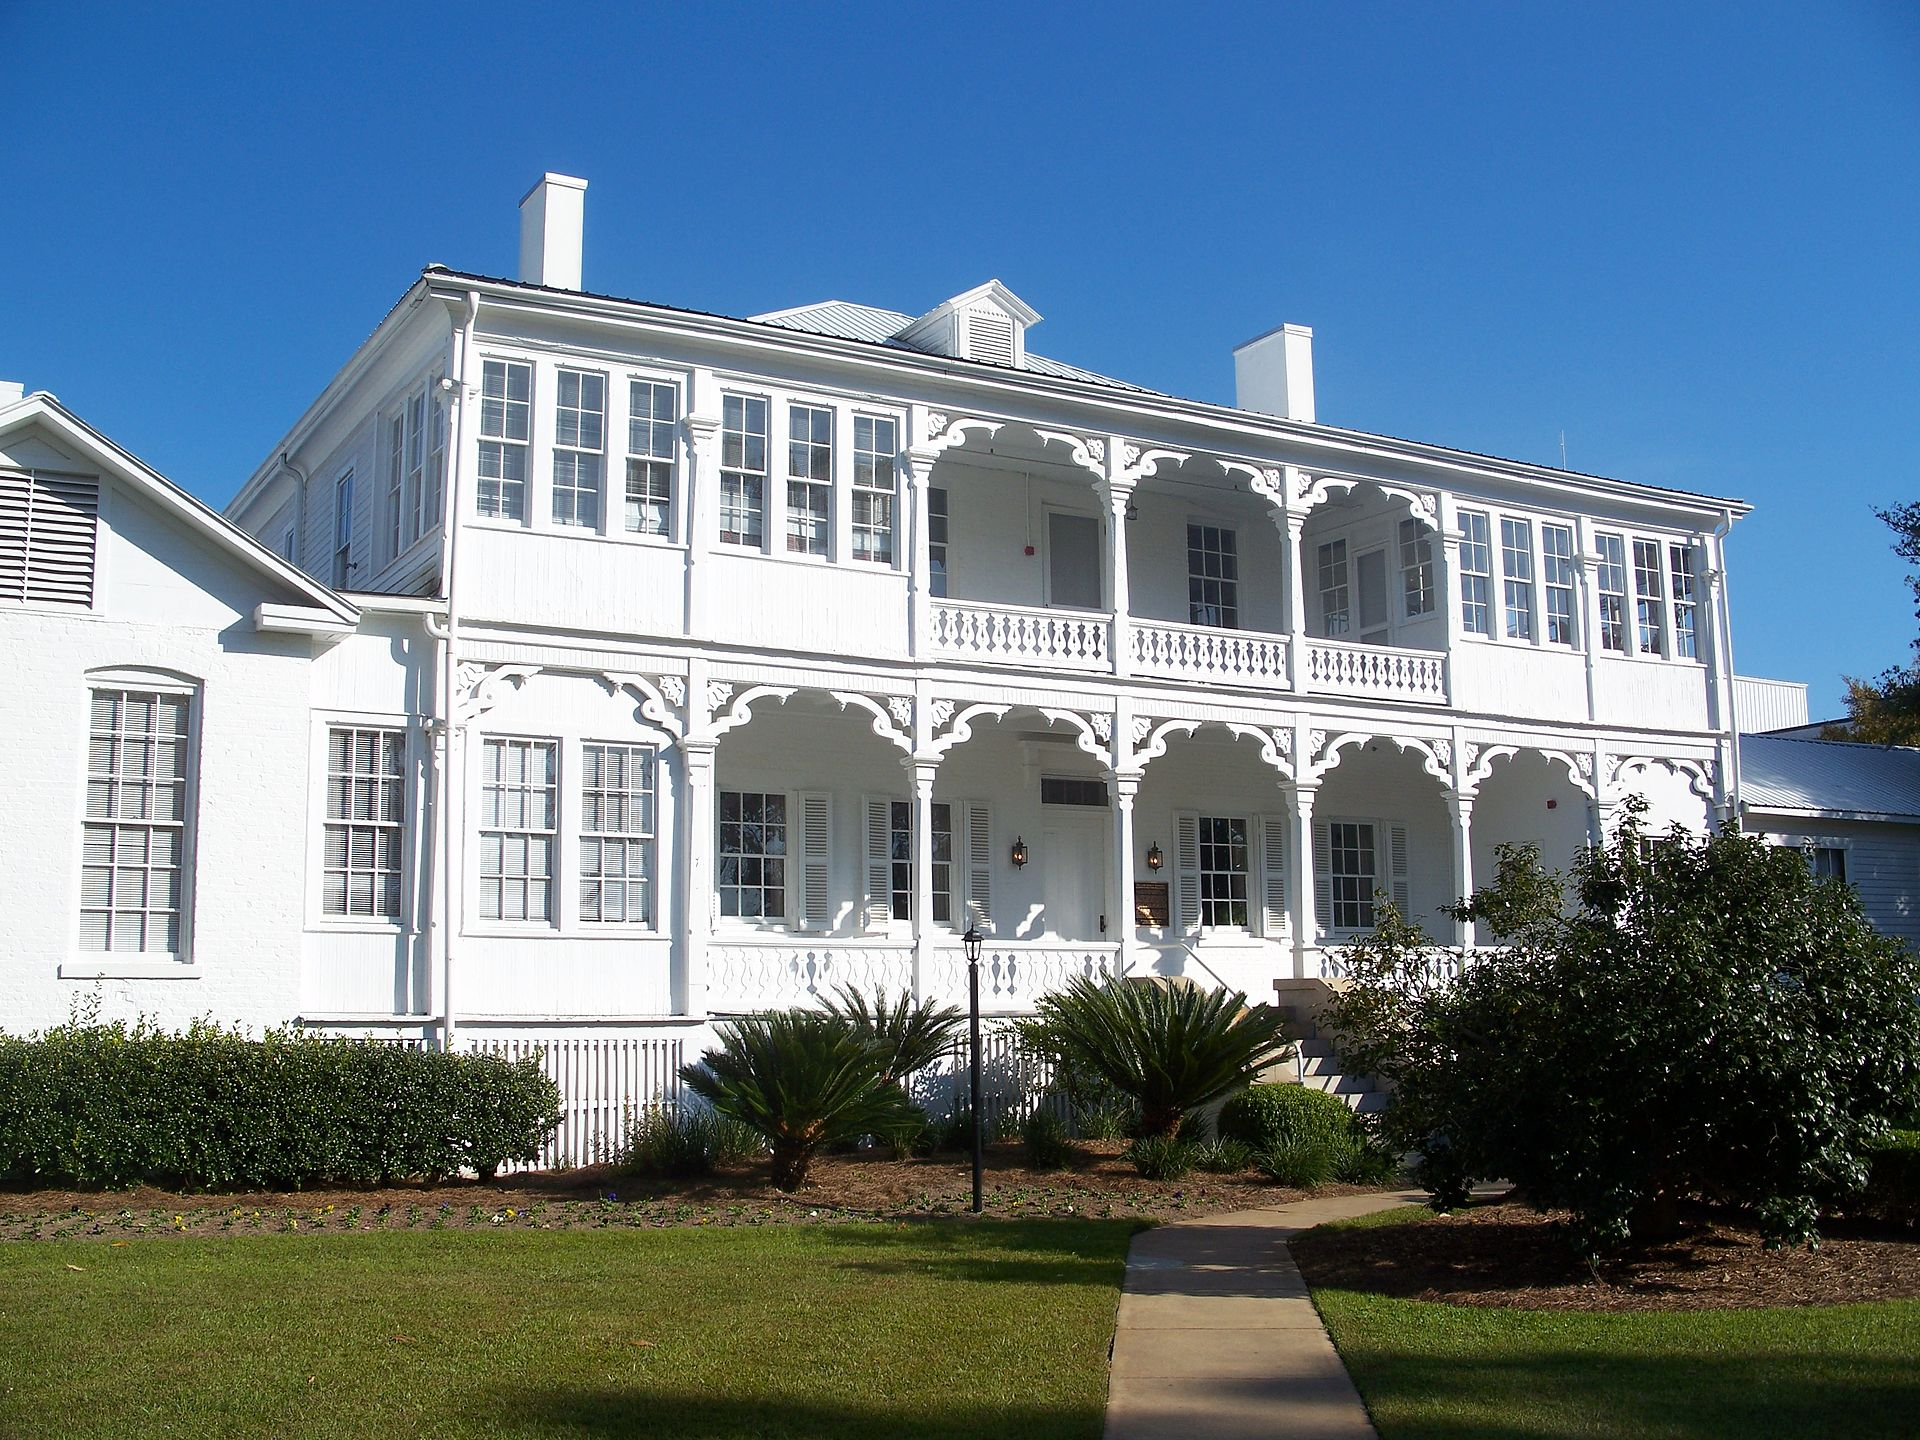 The former Officers Quarters